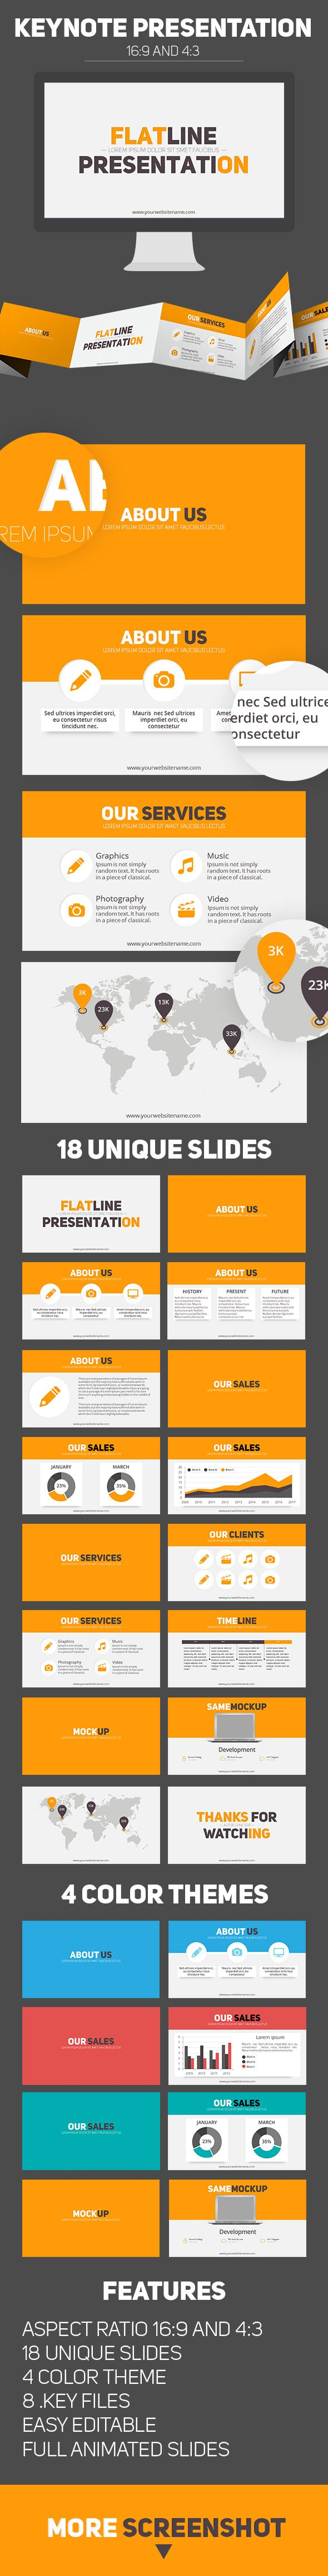 Flat line keynote business presentation Design Tempalte #slides Download: http://graphicriver.net/item/flat-line-keynote-business-presentation/12996694?ref=ksioks